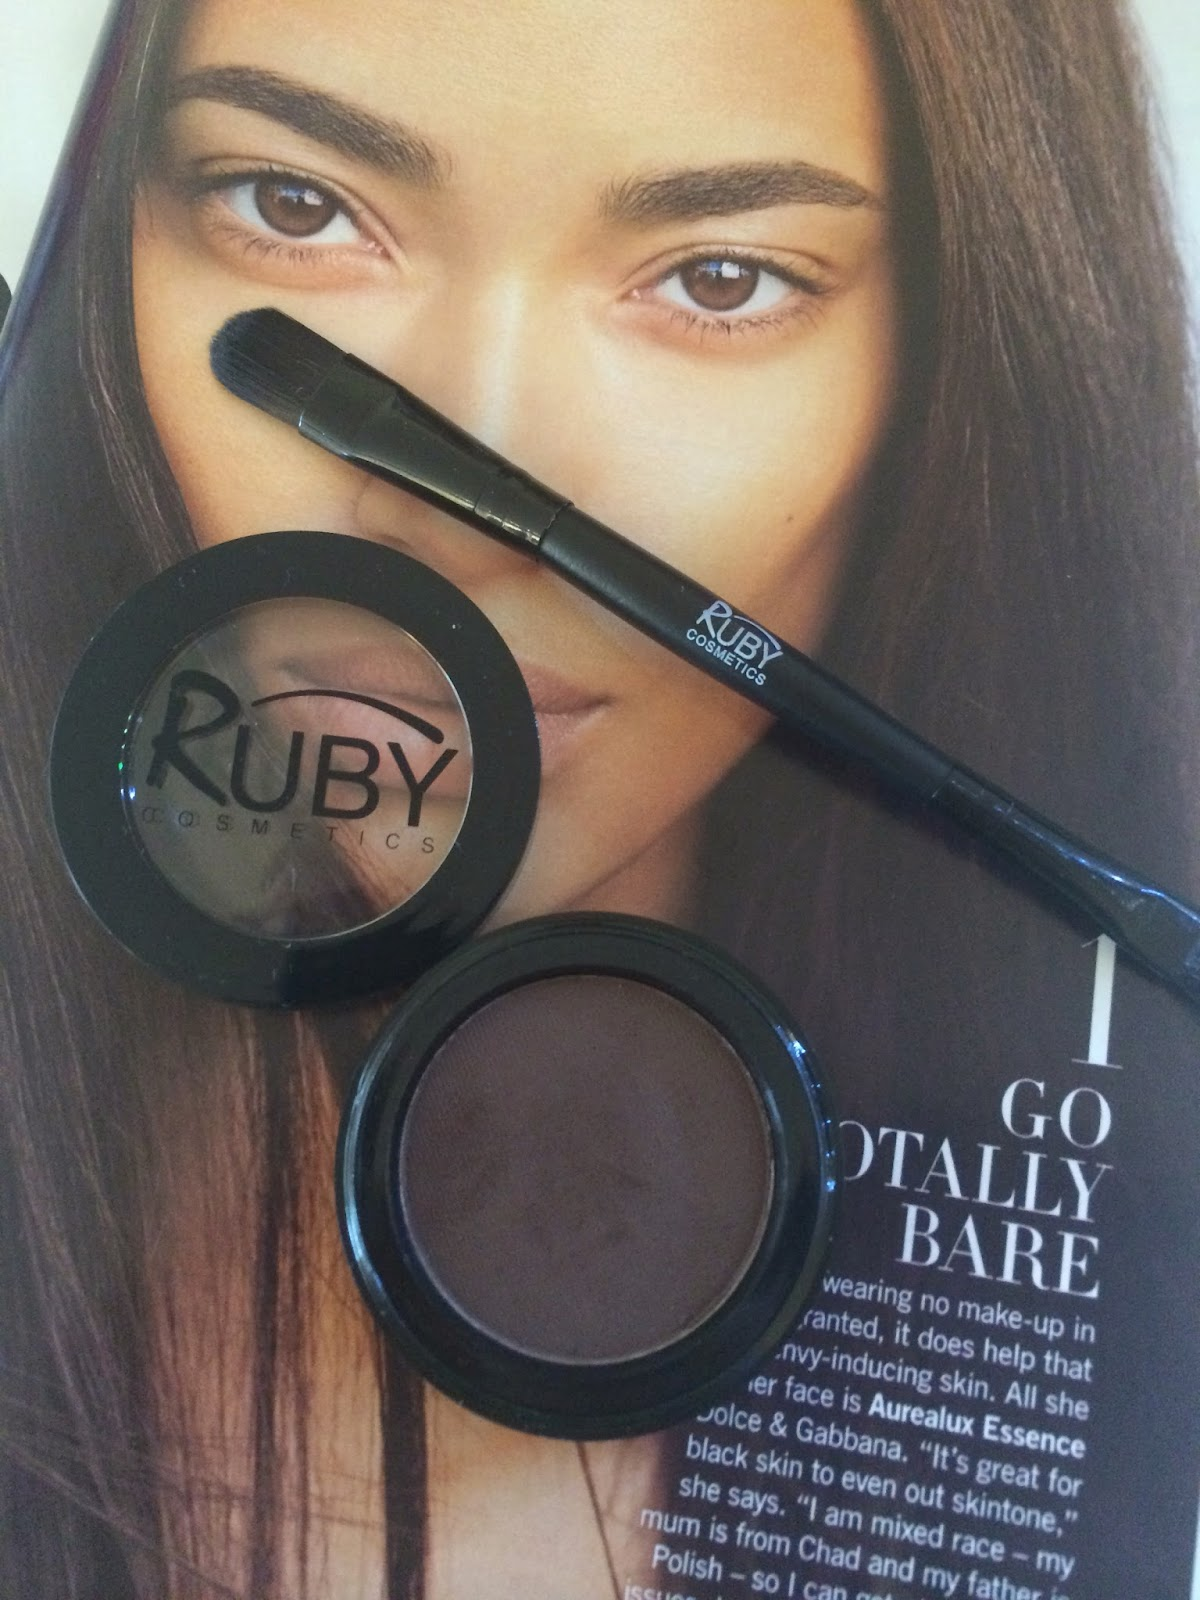 The Glamourelle Ruby Cosmetics Picture Perfect Brows